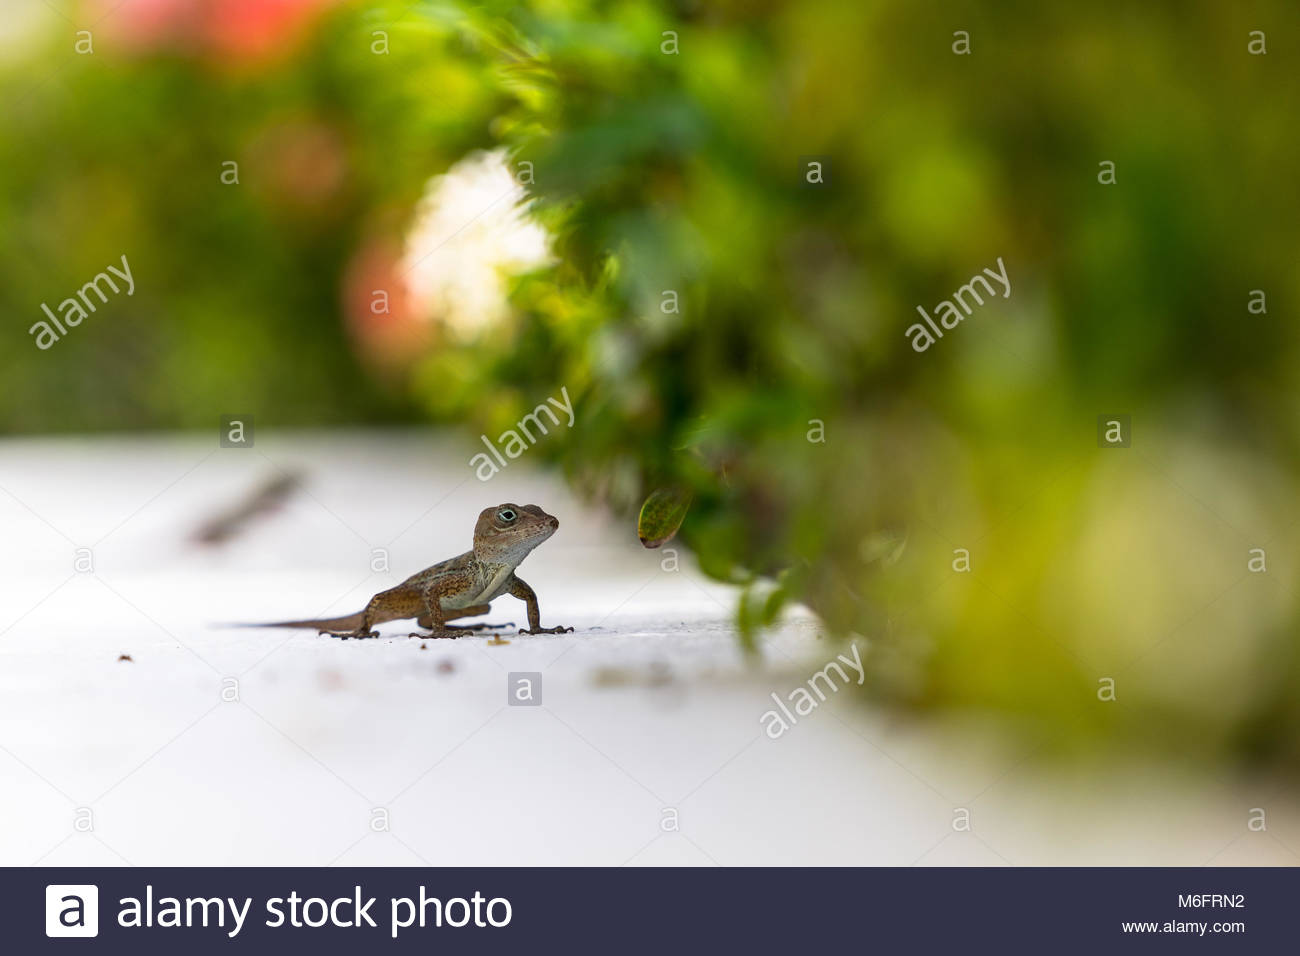 The small brown lizard in the natural environment. Green blurred background with tender leaf and white rose shape. - Stock Image